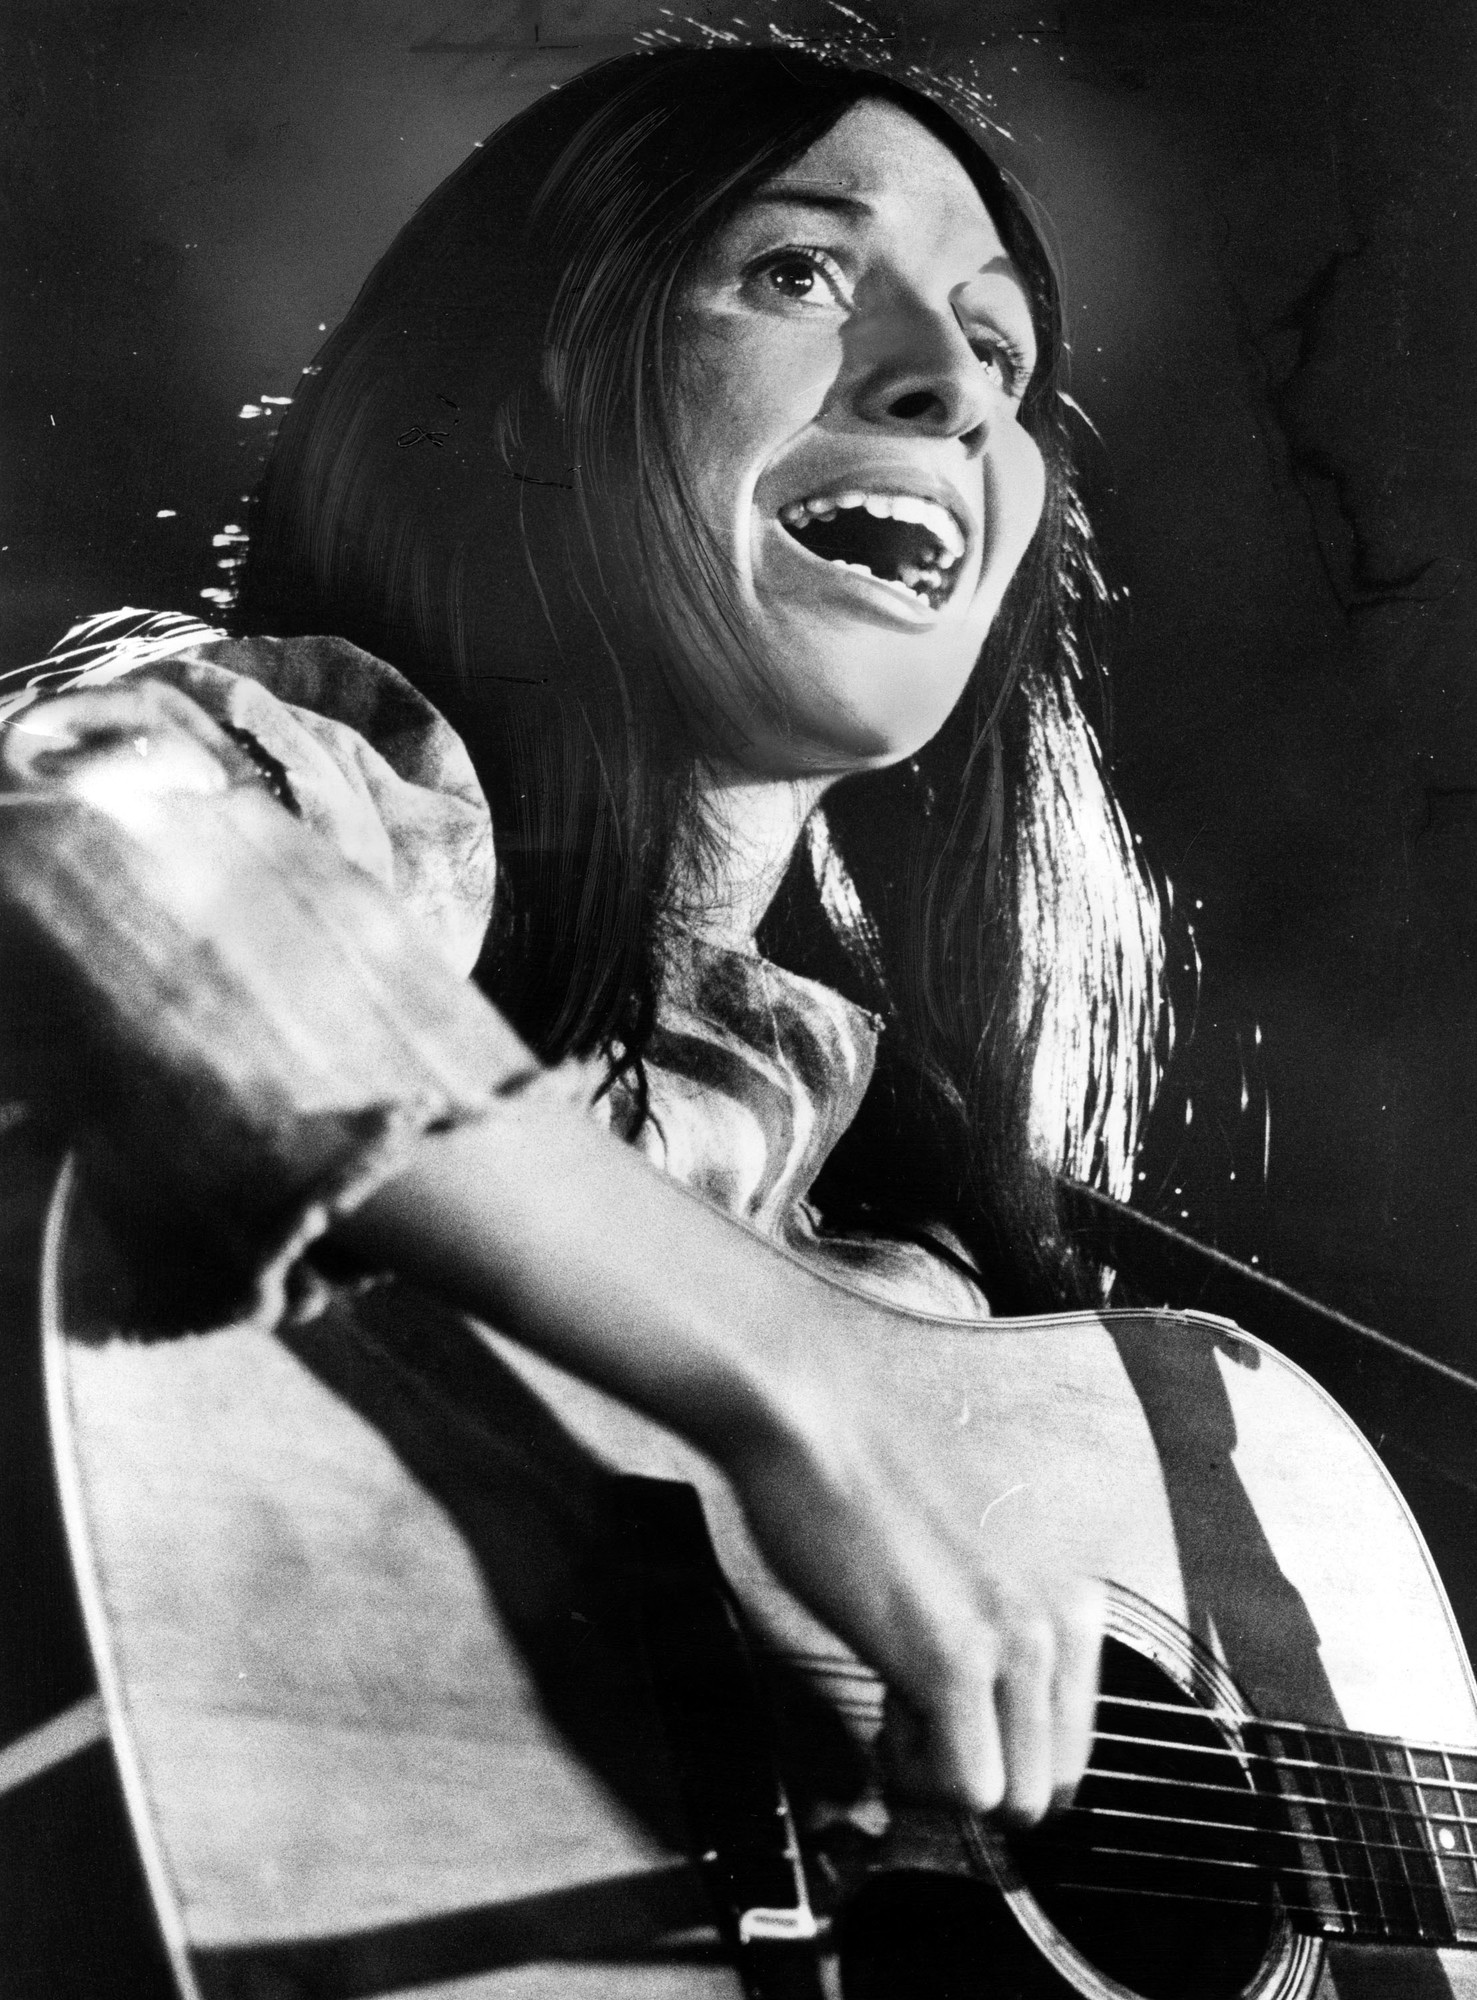 A black and white photograph of a woman with long dark hair singing into a microphone with a guitar.